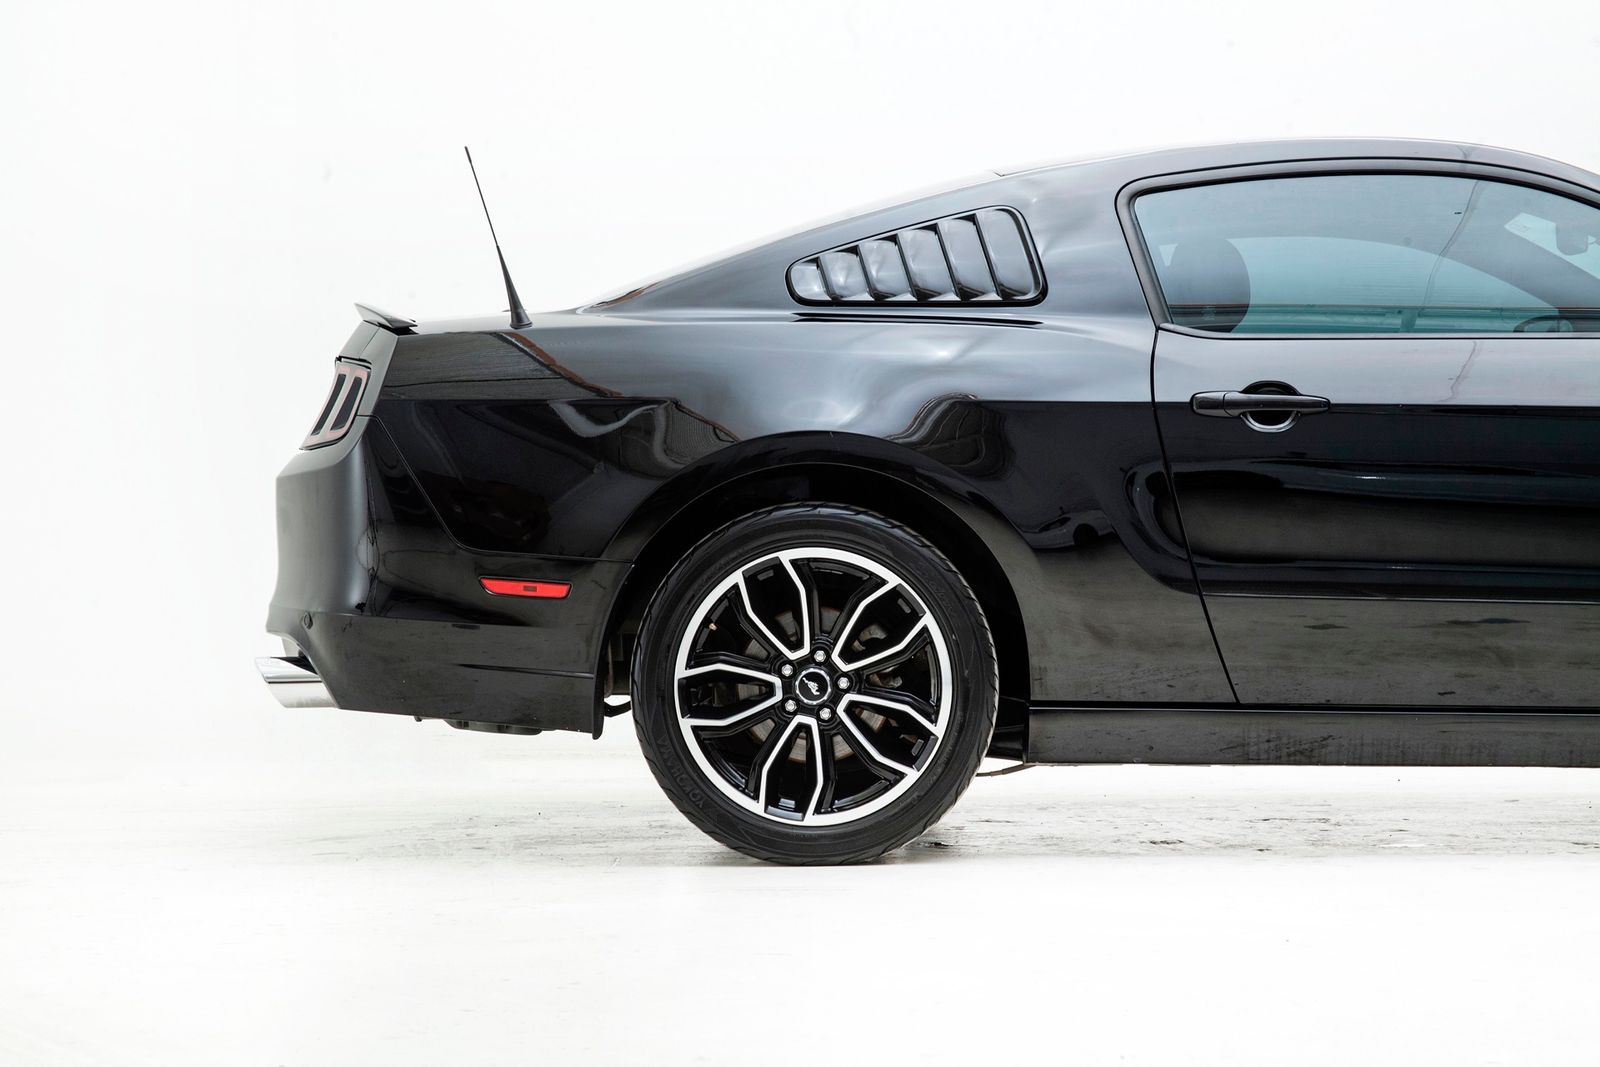 Used 2013 Black Ford Mustang  GT Premium Photo 7